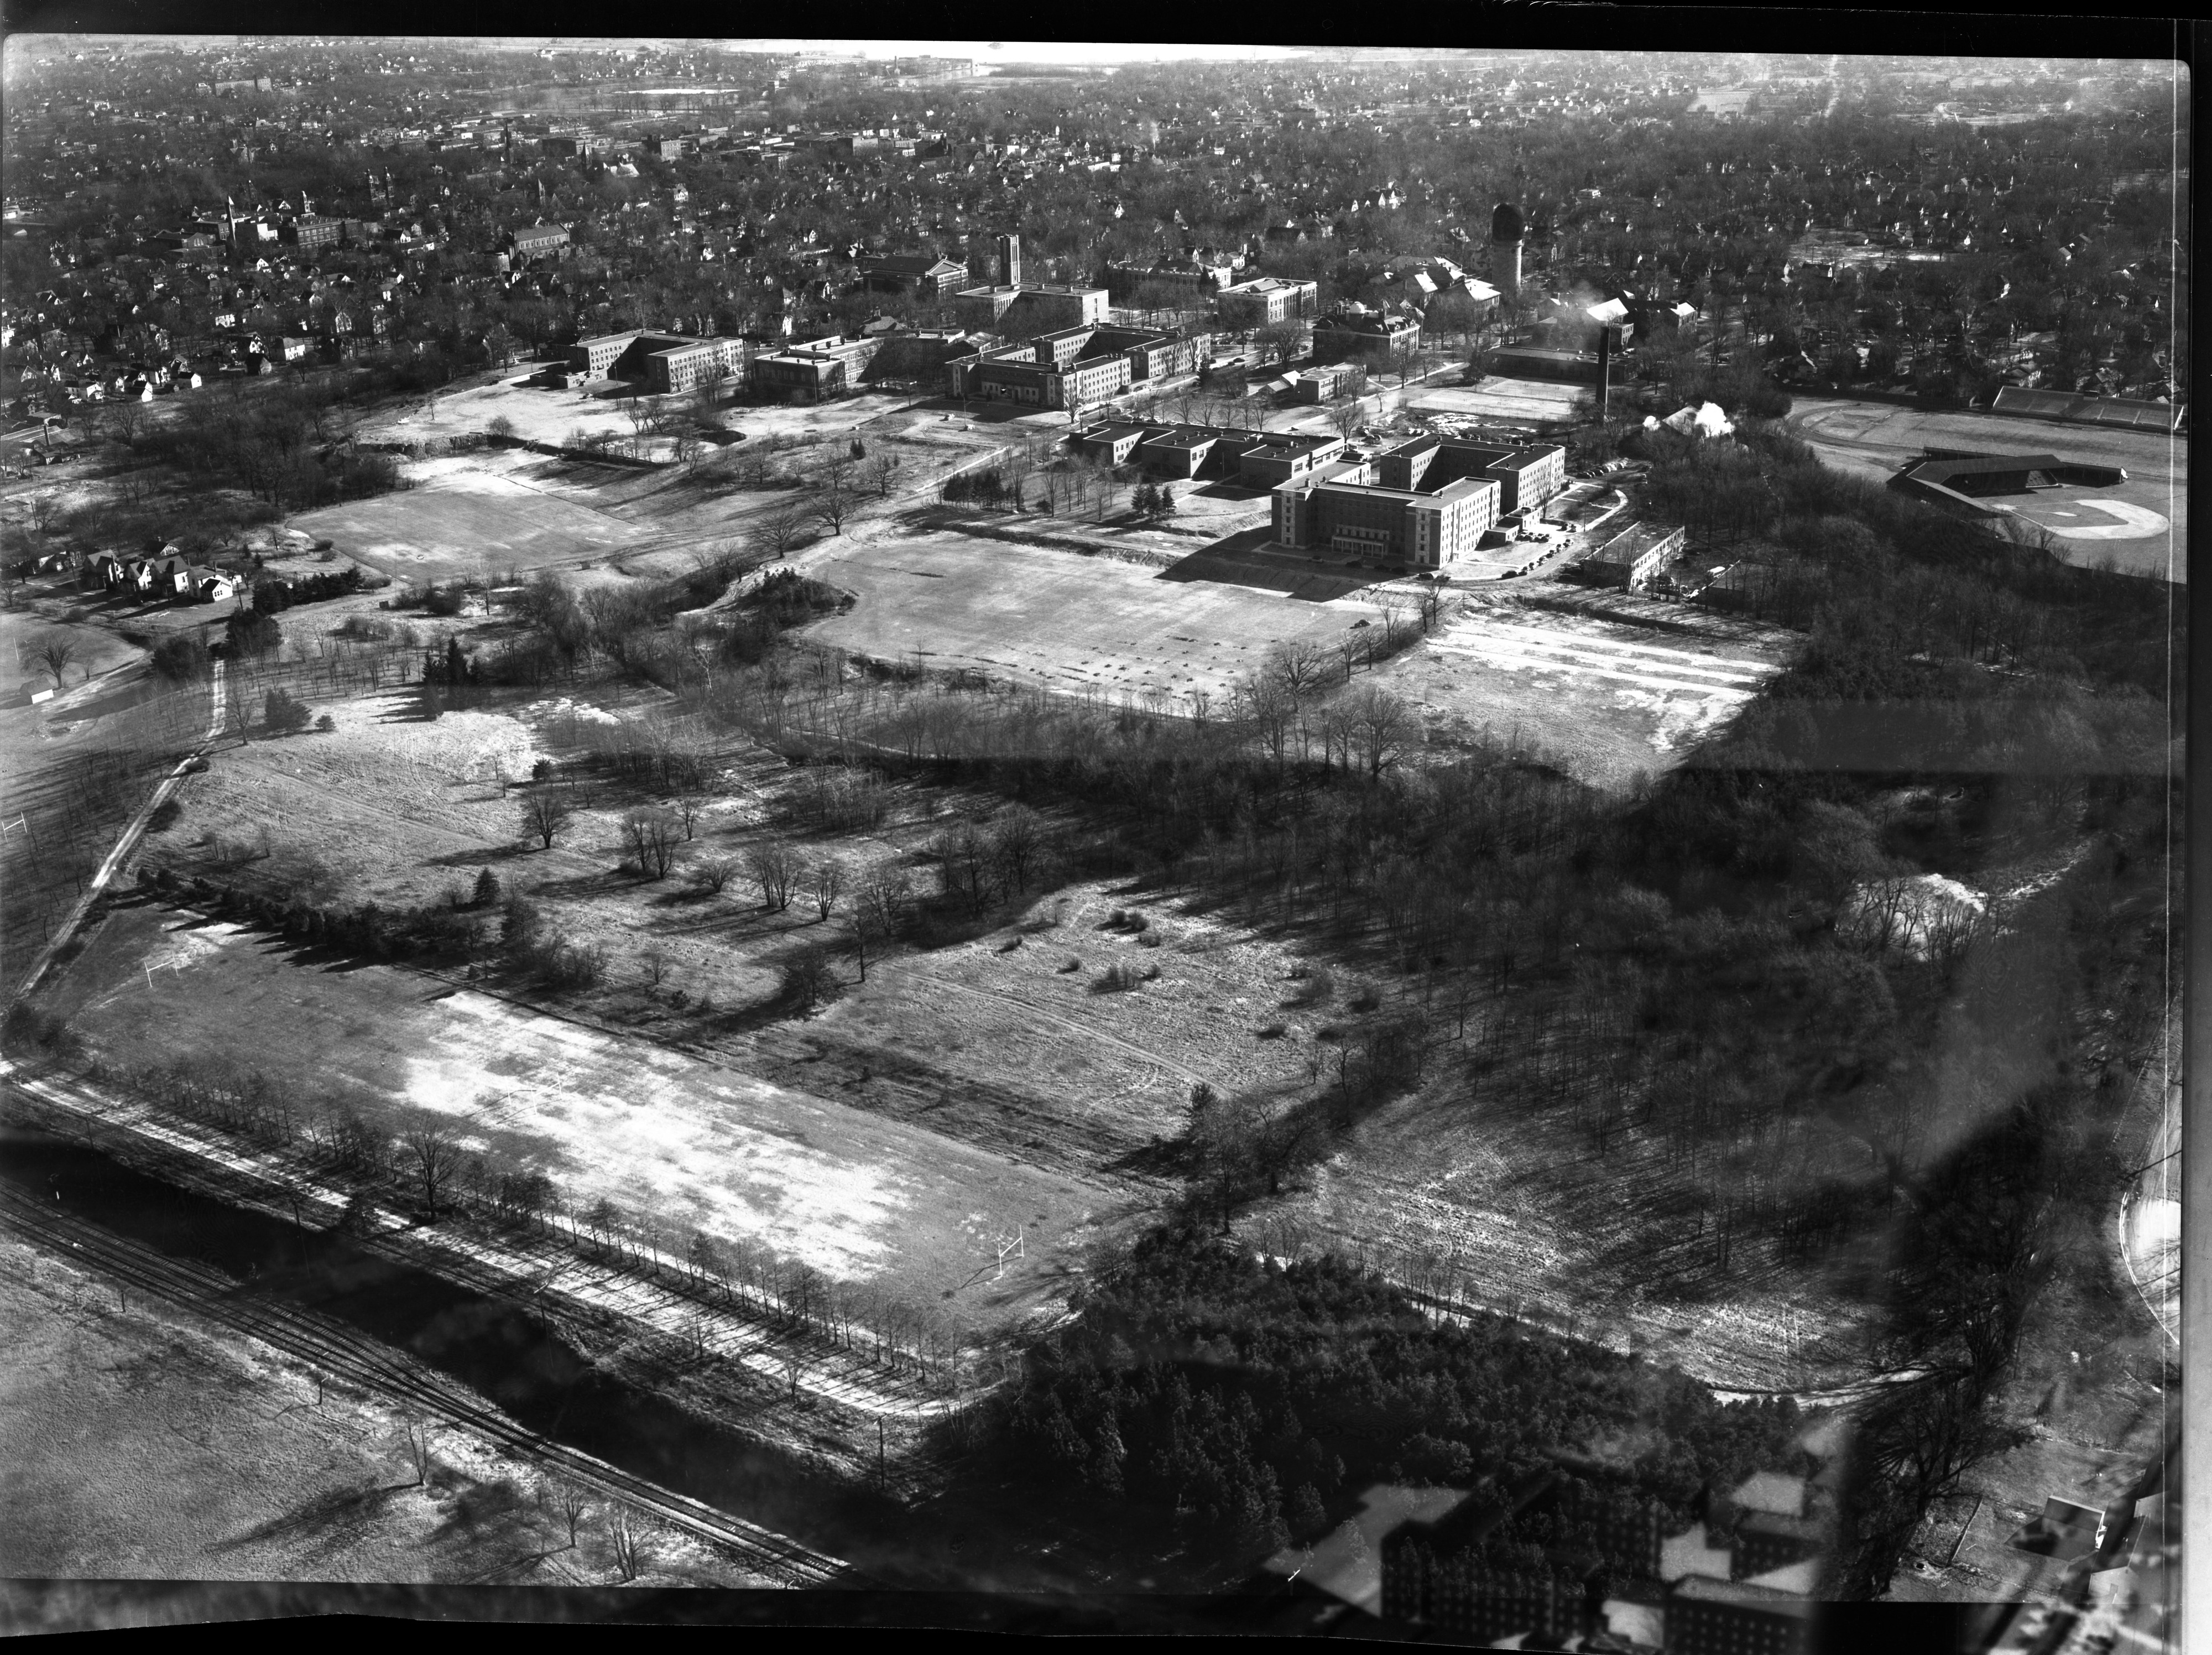 Aerial Photograph of Proposed Golf Course at State Normal College, Ypsilanti, January 1950 image